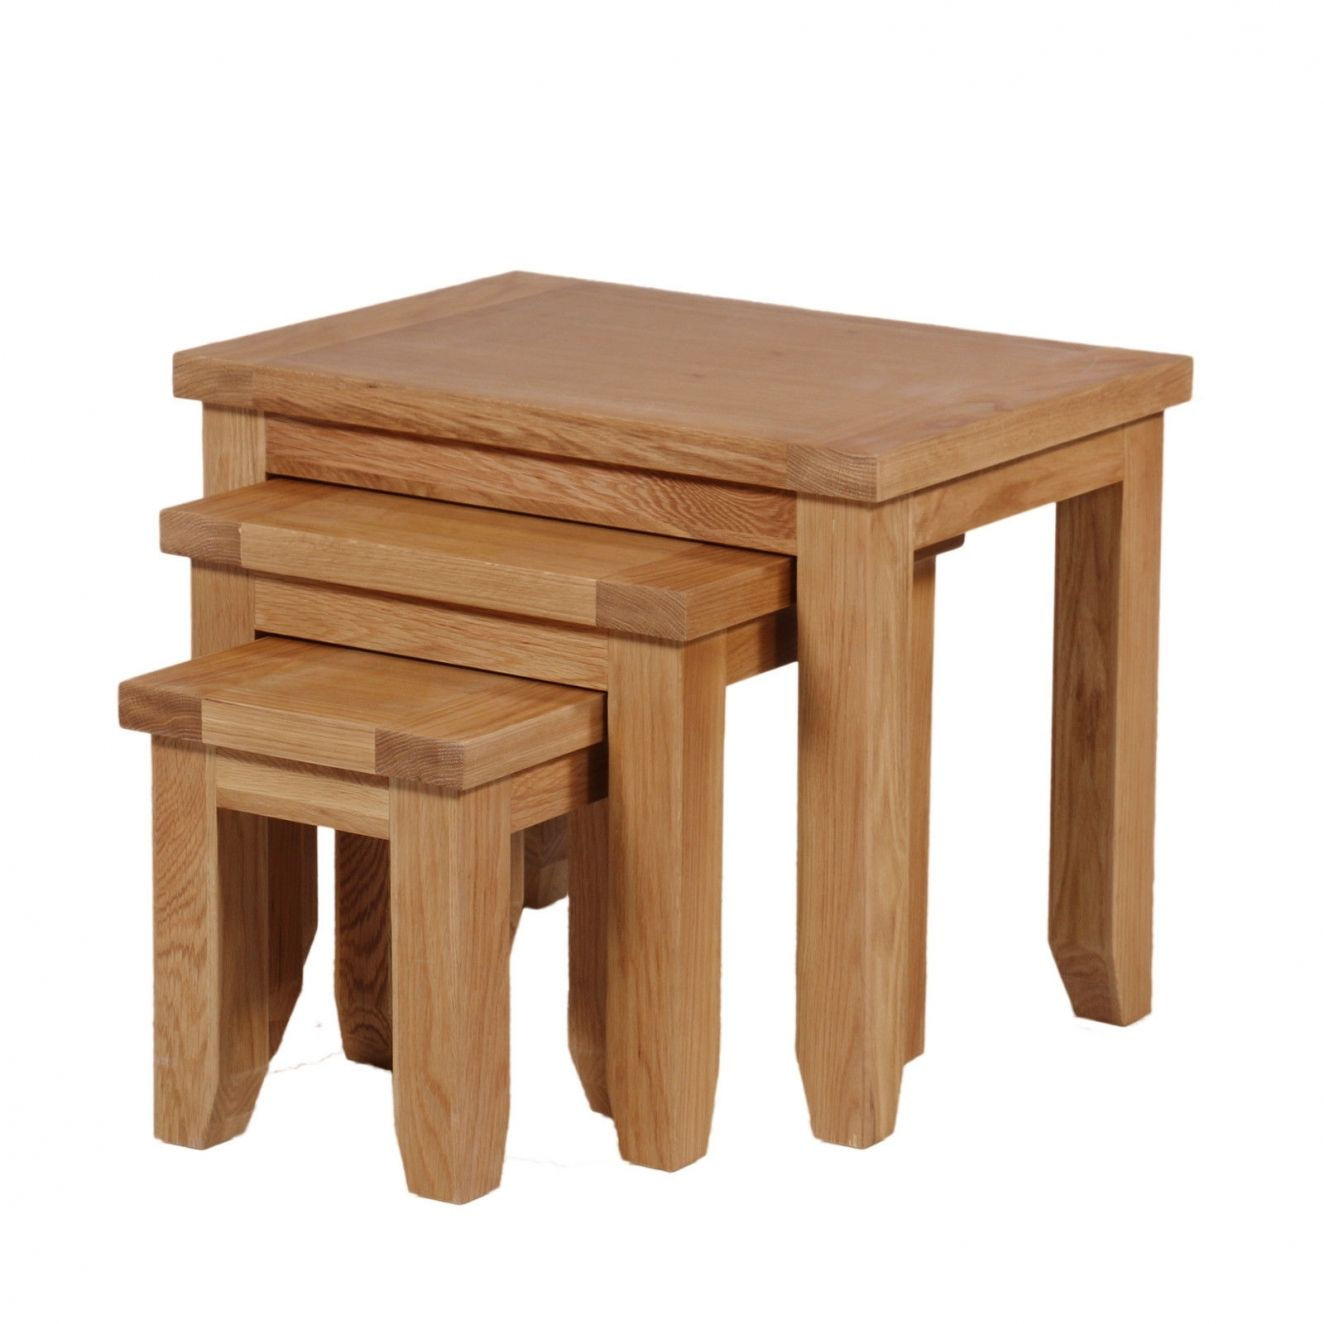 Attirant Small Oak Side Tables For Living Room   Ideas For Living Rooms Check More  At Http